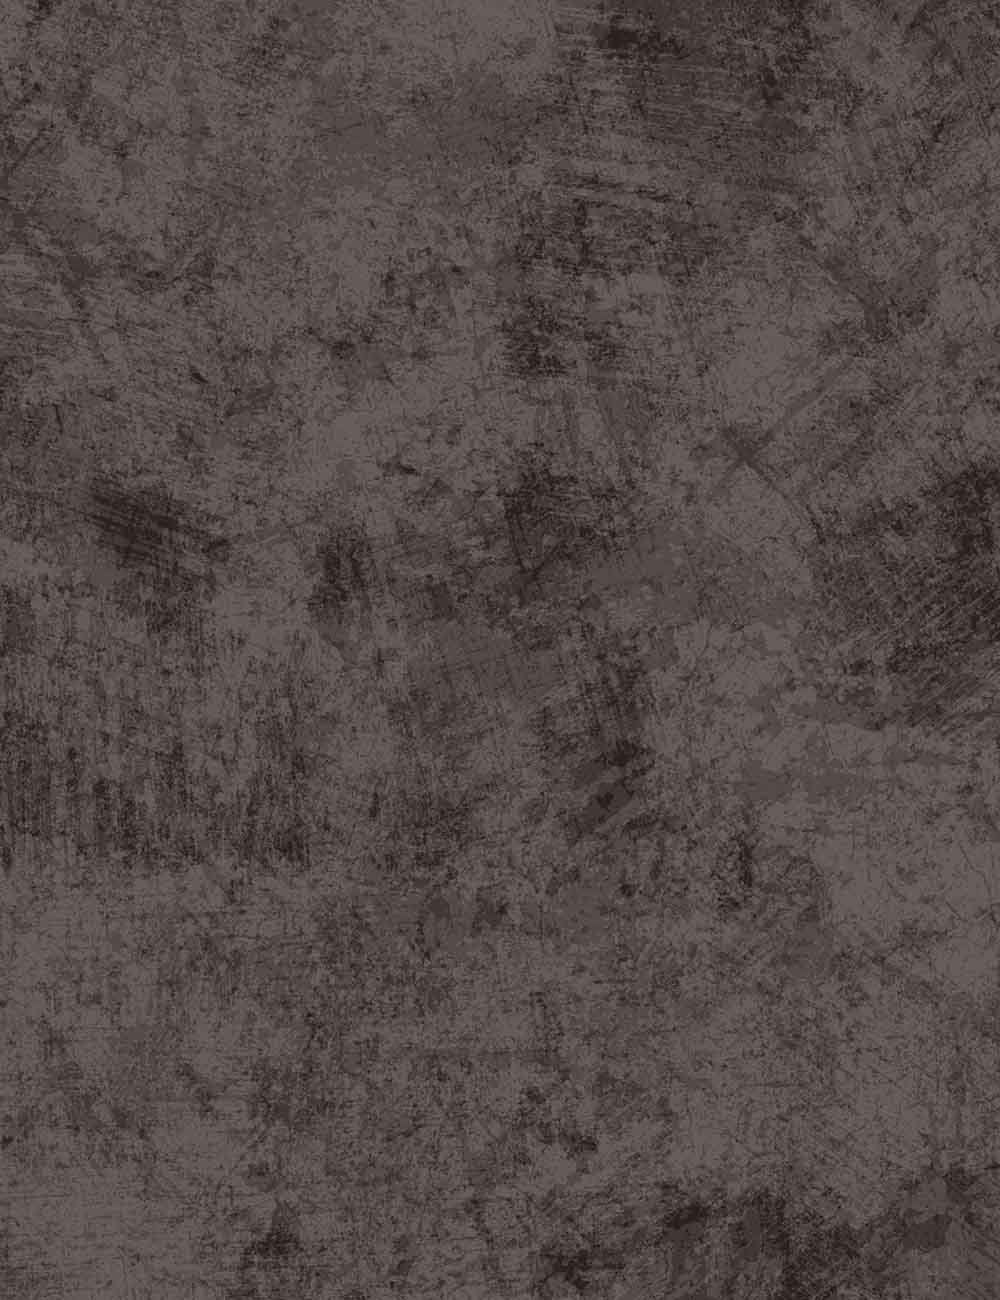 Deep Dark Red Texture Oliphant Backdrop For Photo Studio - Shop Backdrop